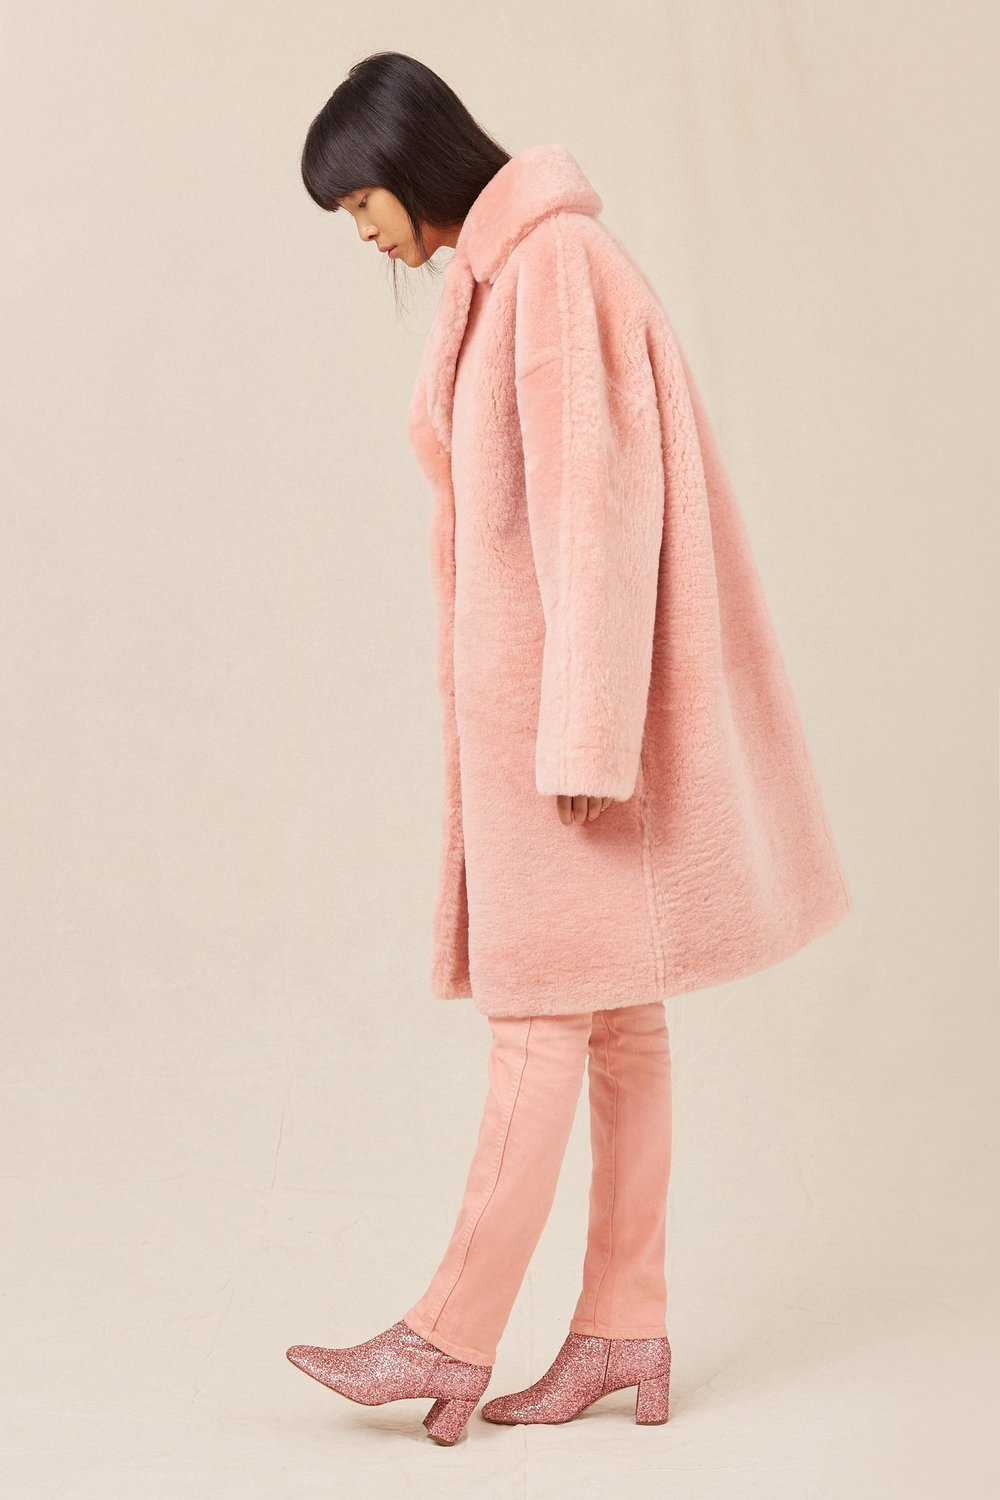 Classic_Coat_Shearling_Blush_Detail_4_1280x.jpg